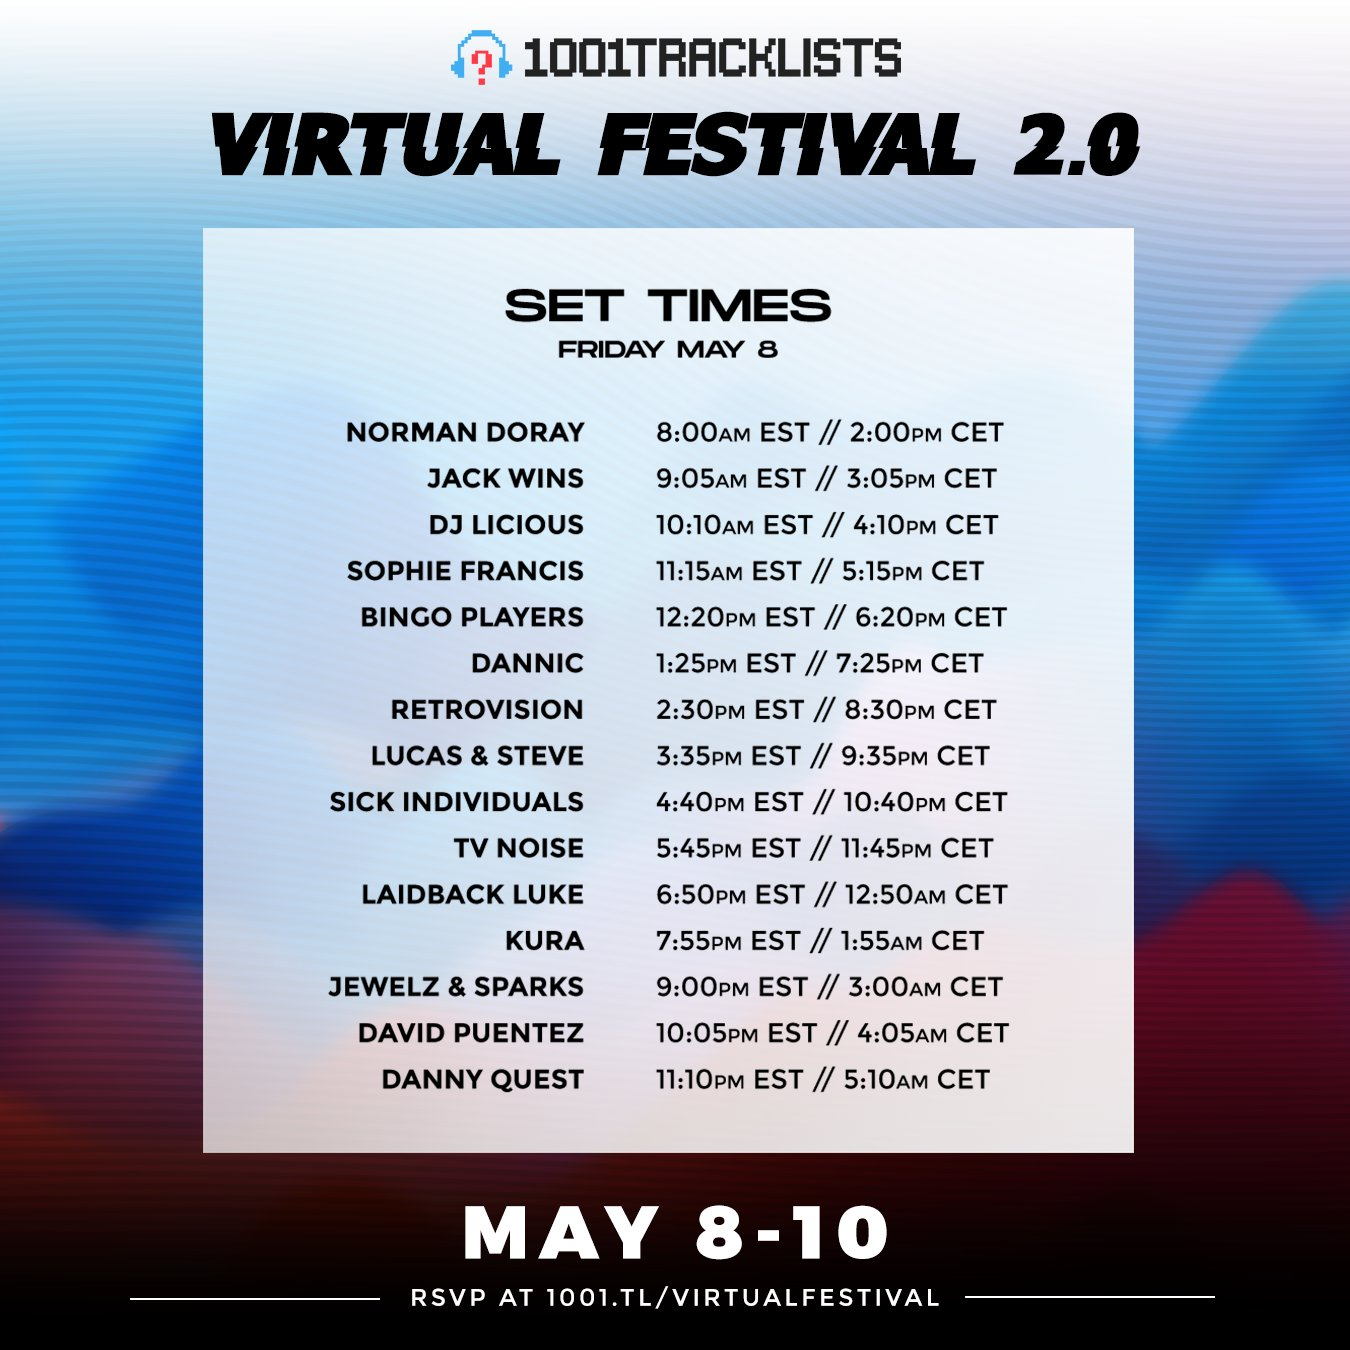 1001Tracklists Virtual Festival Schedule - Friday